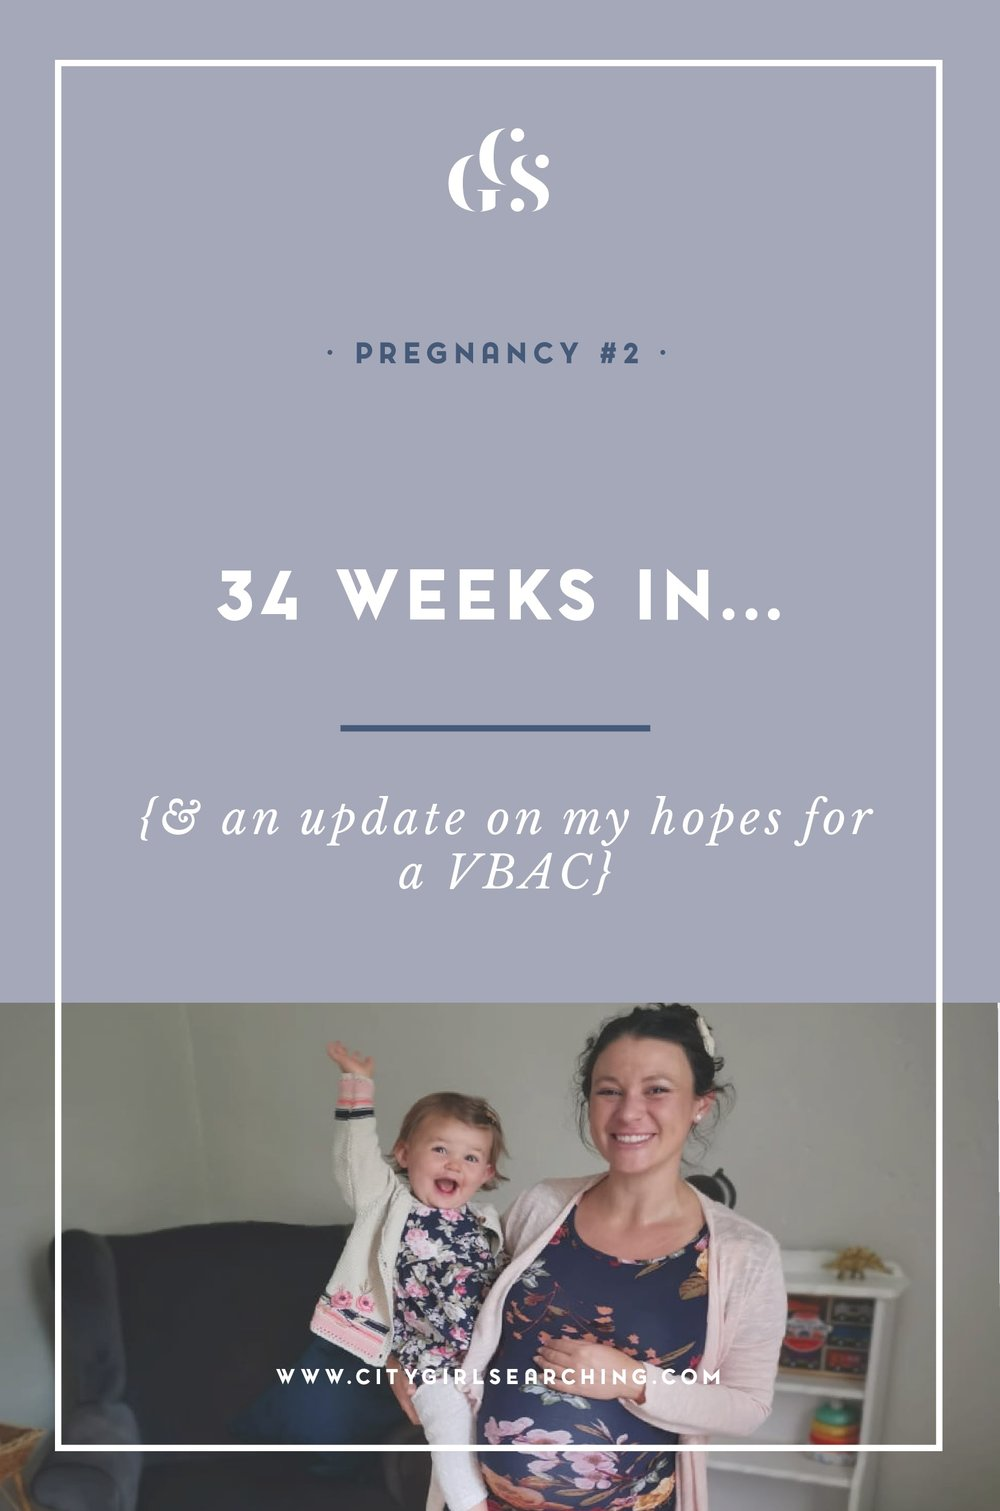 34+Weeks+with+Pregnancy+%232+and+my+VBAC+dreams-01.jpg